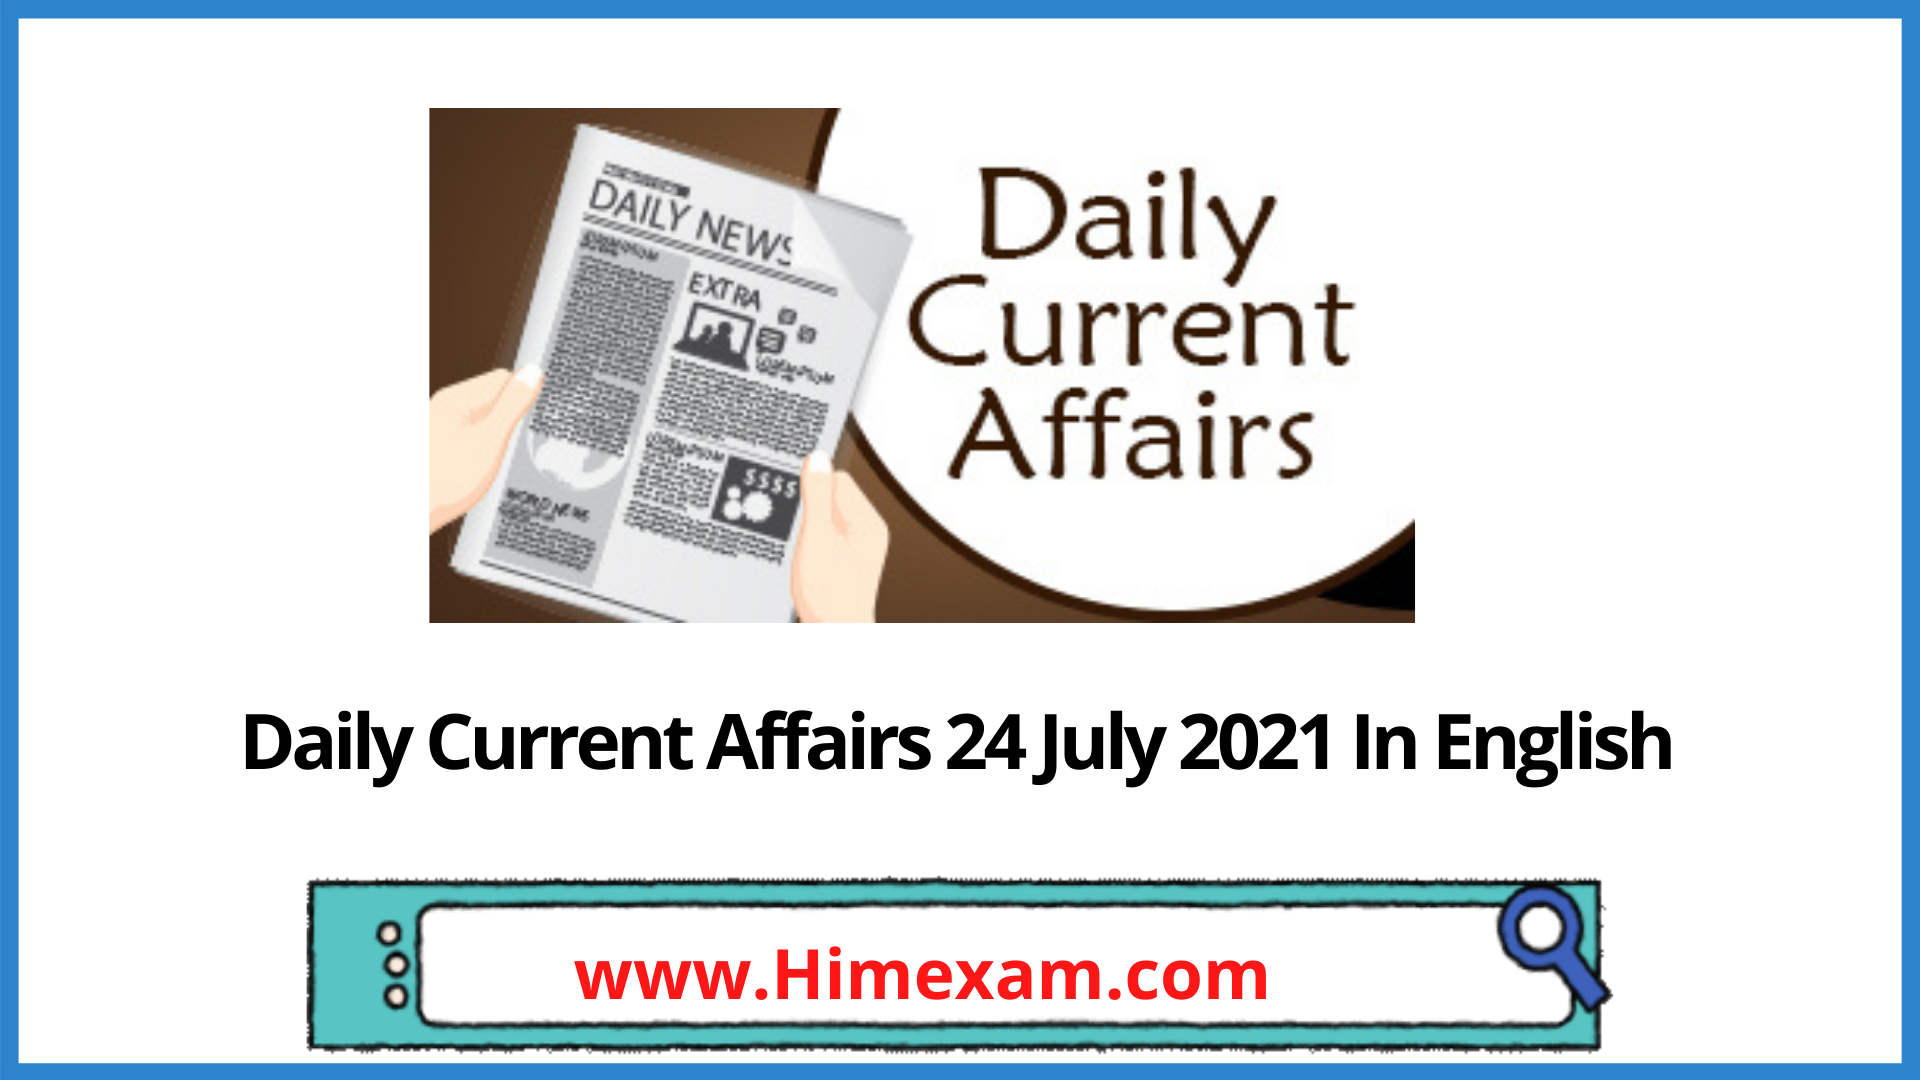 Daily Current Affairs 24 July 2021 In English